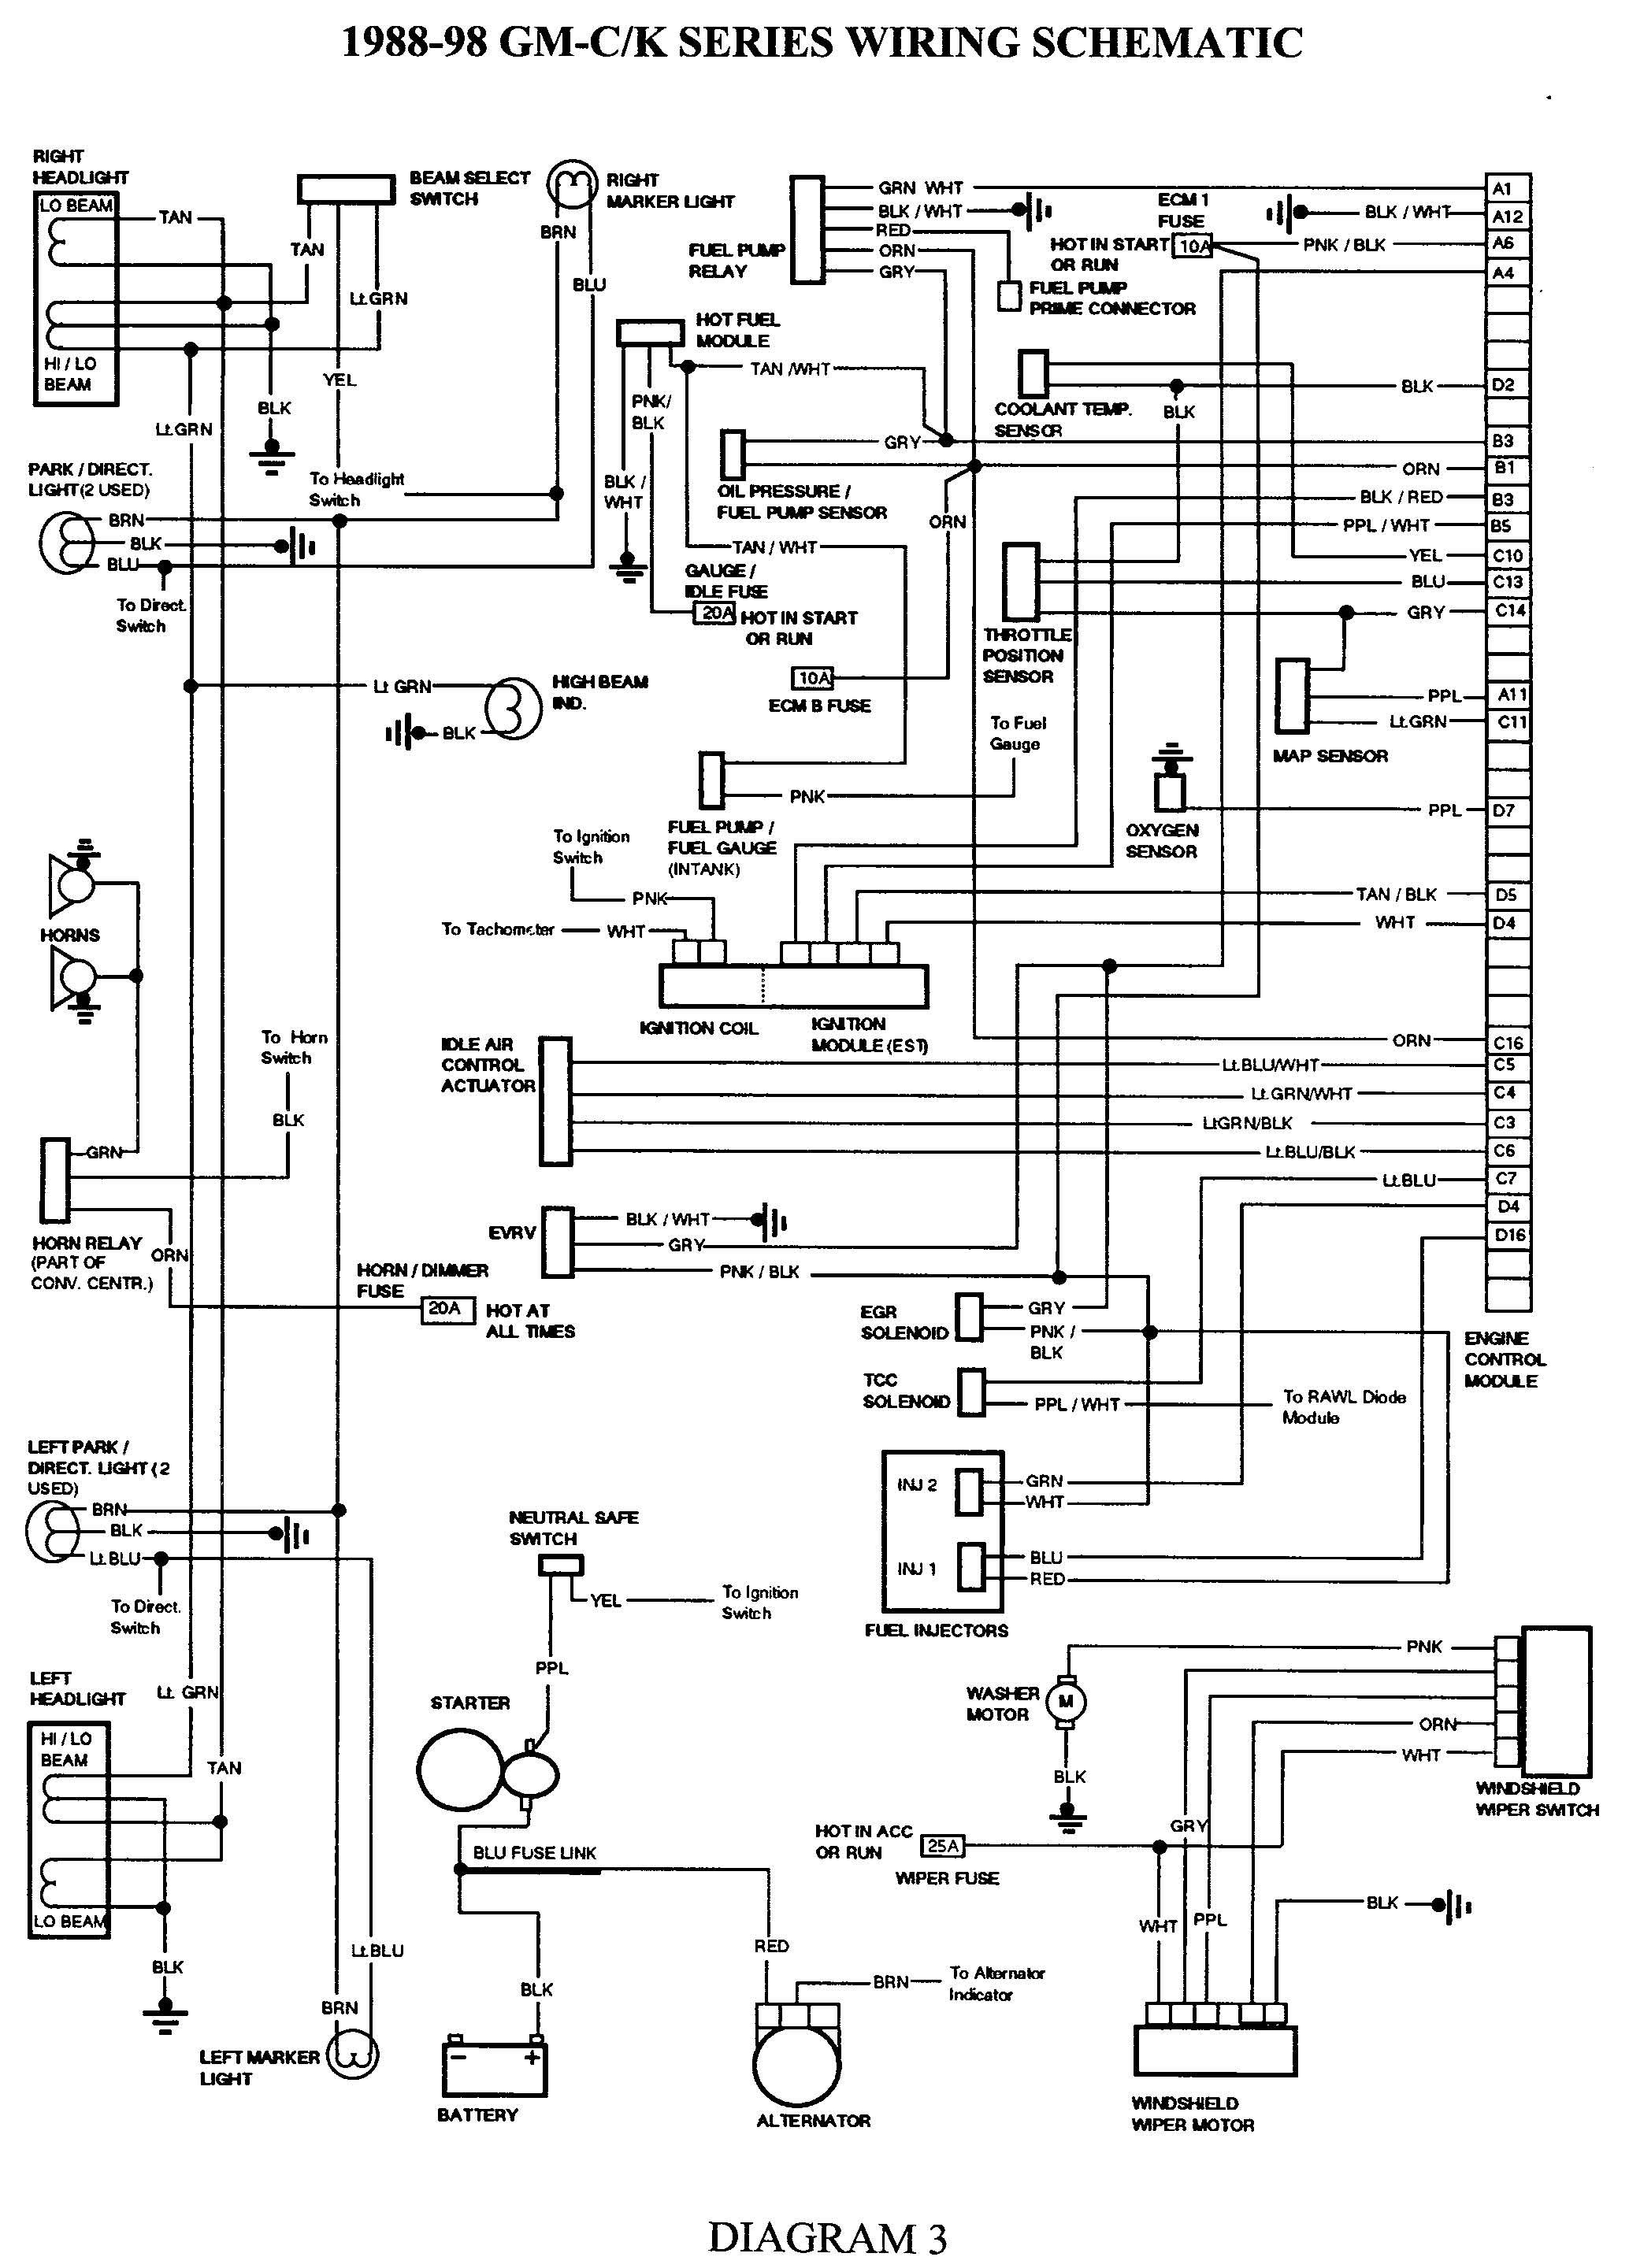 Envoy Do You Have Wiring Diagram For A Bose System From Car Pictures